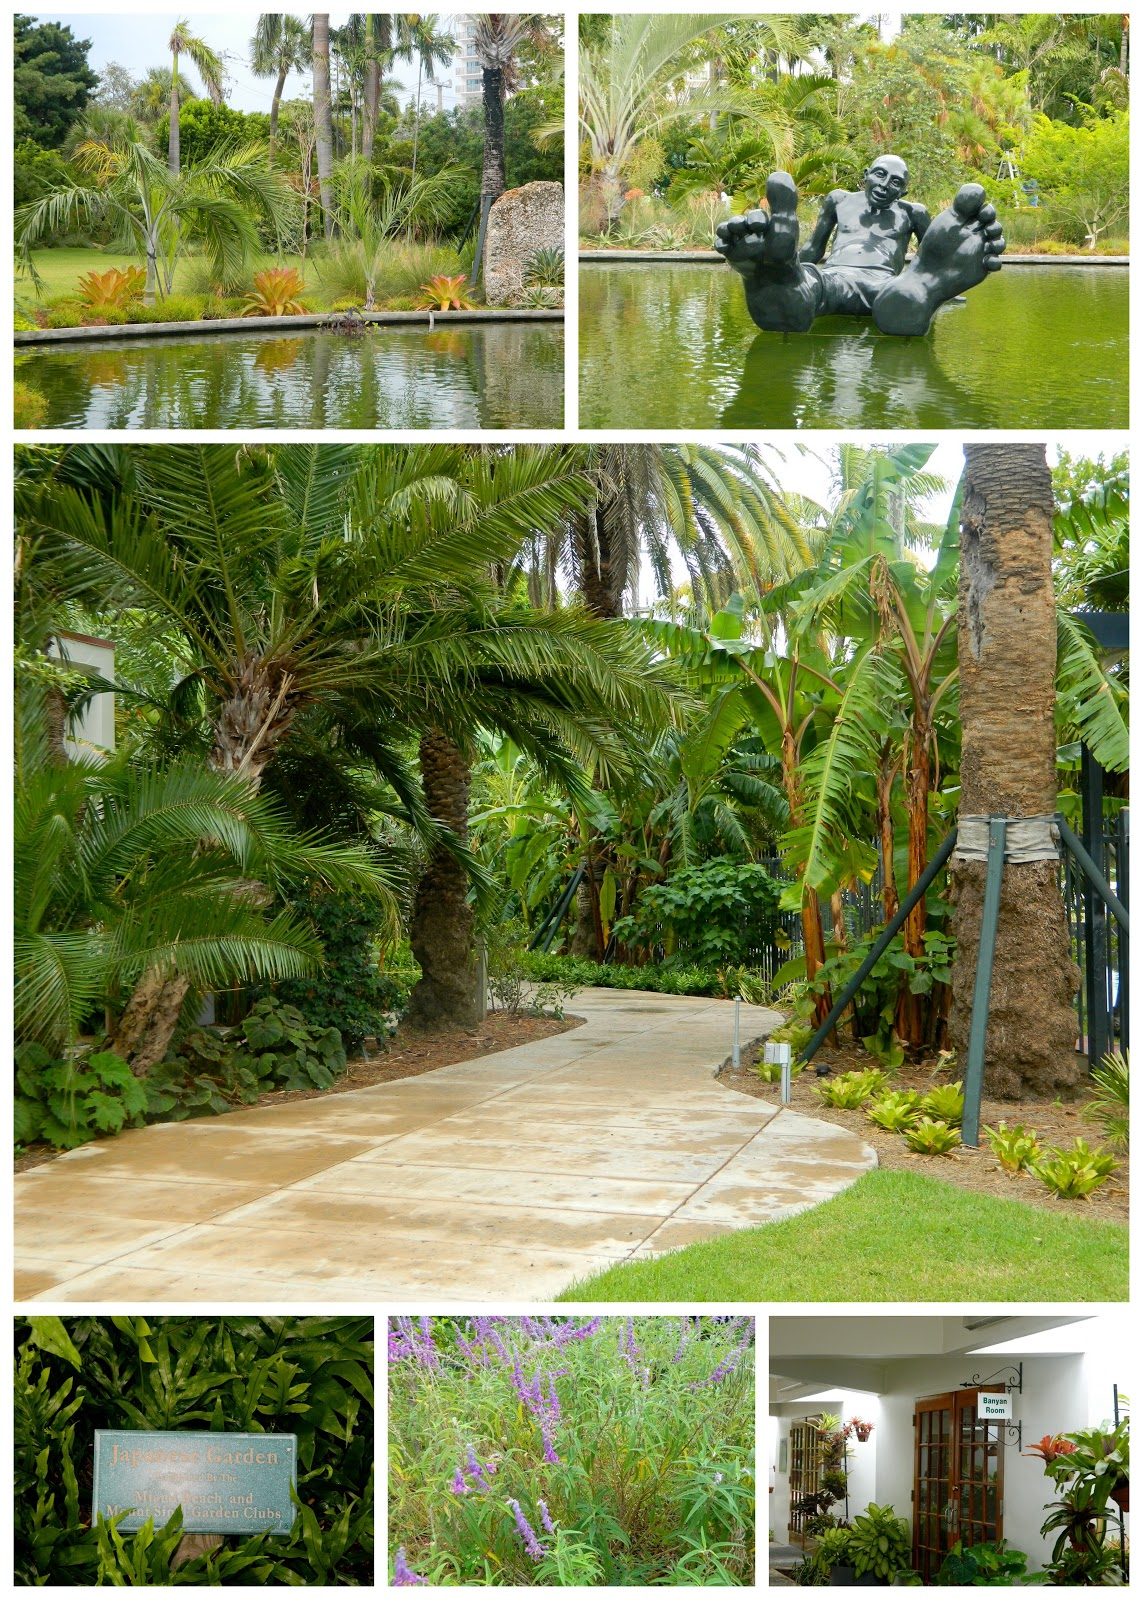 Liz and lex events september 2012 - Miami beach botanical garden wedding ...